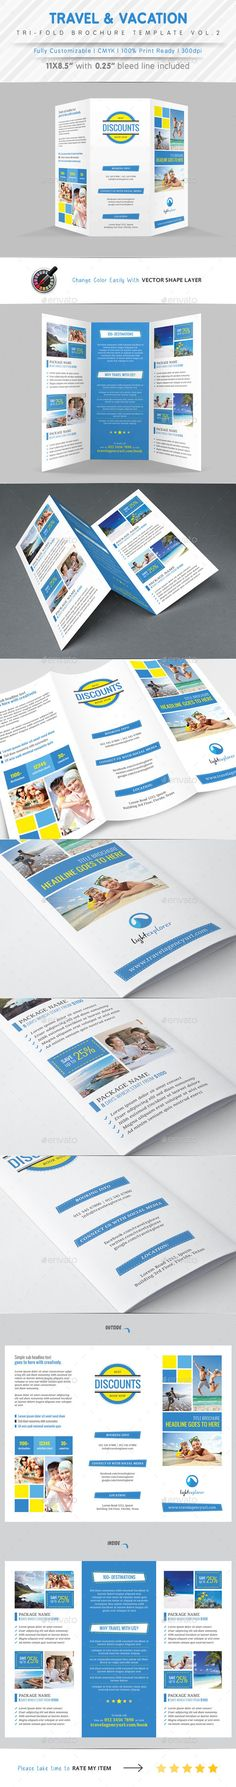 Clean Hotel Brochure  Hotel Brochure Corporate Brochure And